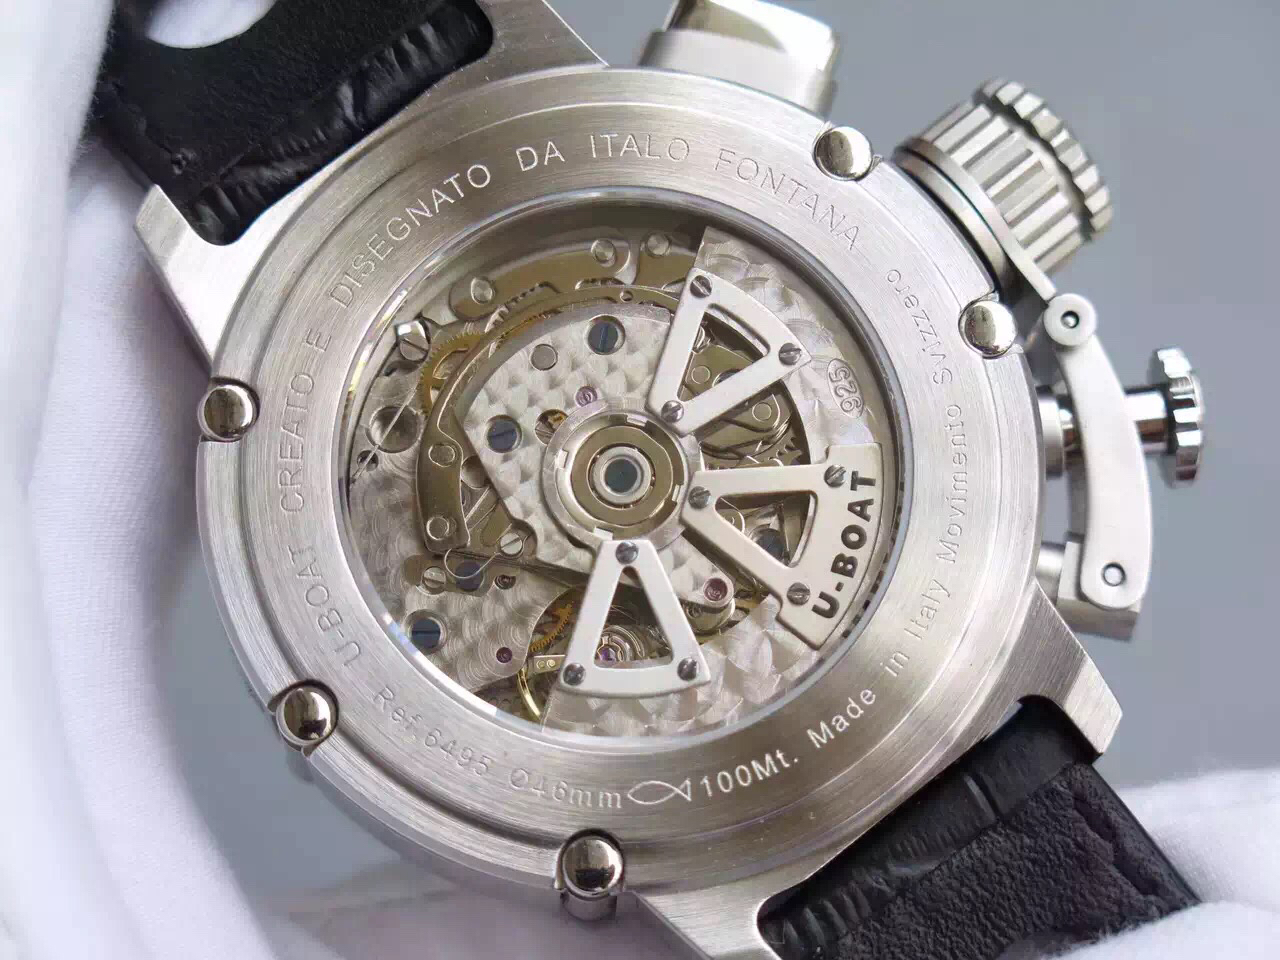 Replica U-Boat U-51 Chimera Chronograph Movement